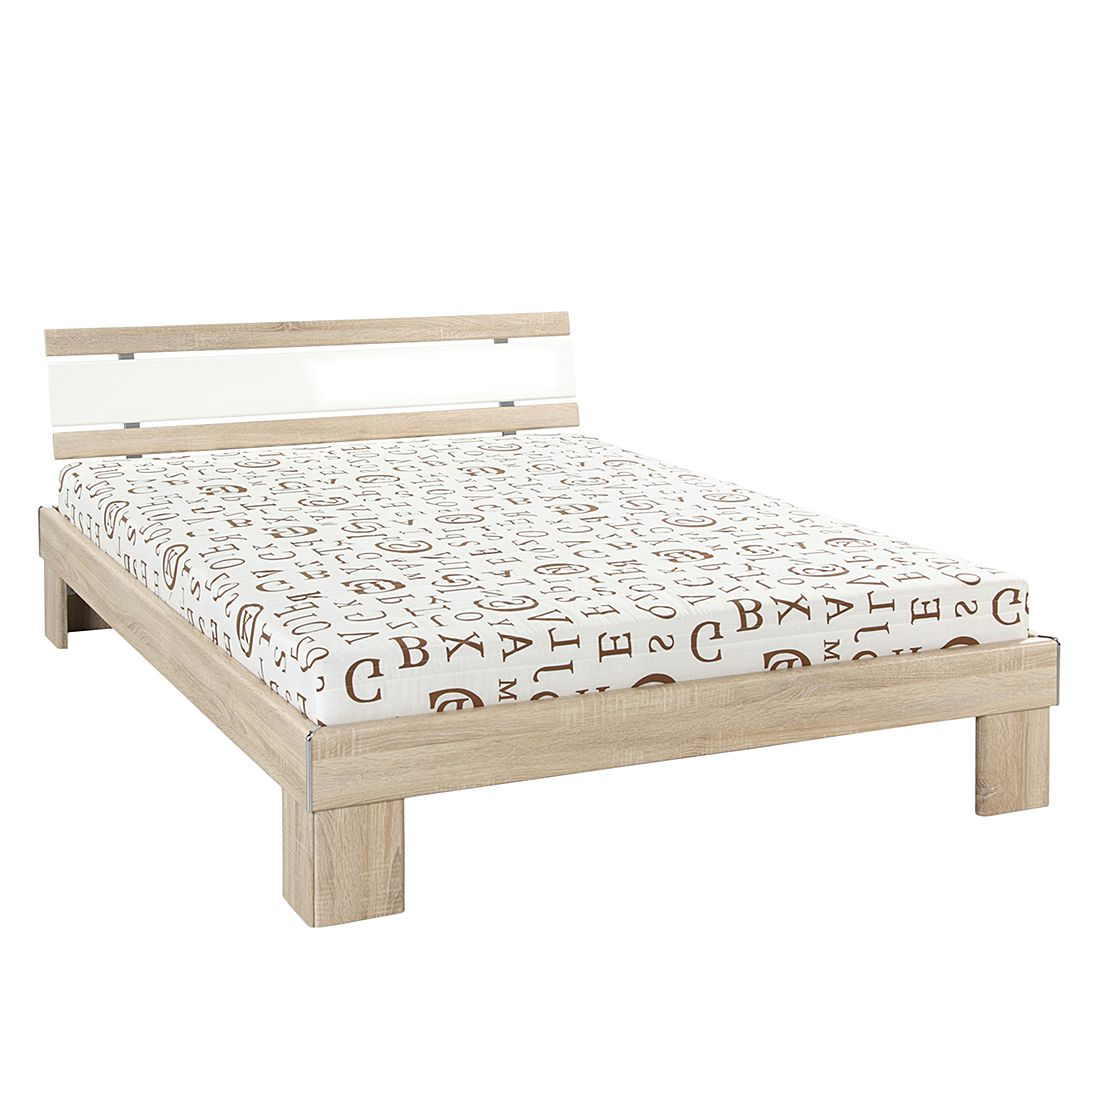 Lit Betty - Matelas à ressorts Bonnell - Imitation chêne brut de sciage / Blanc, Home Design